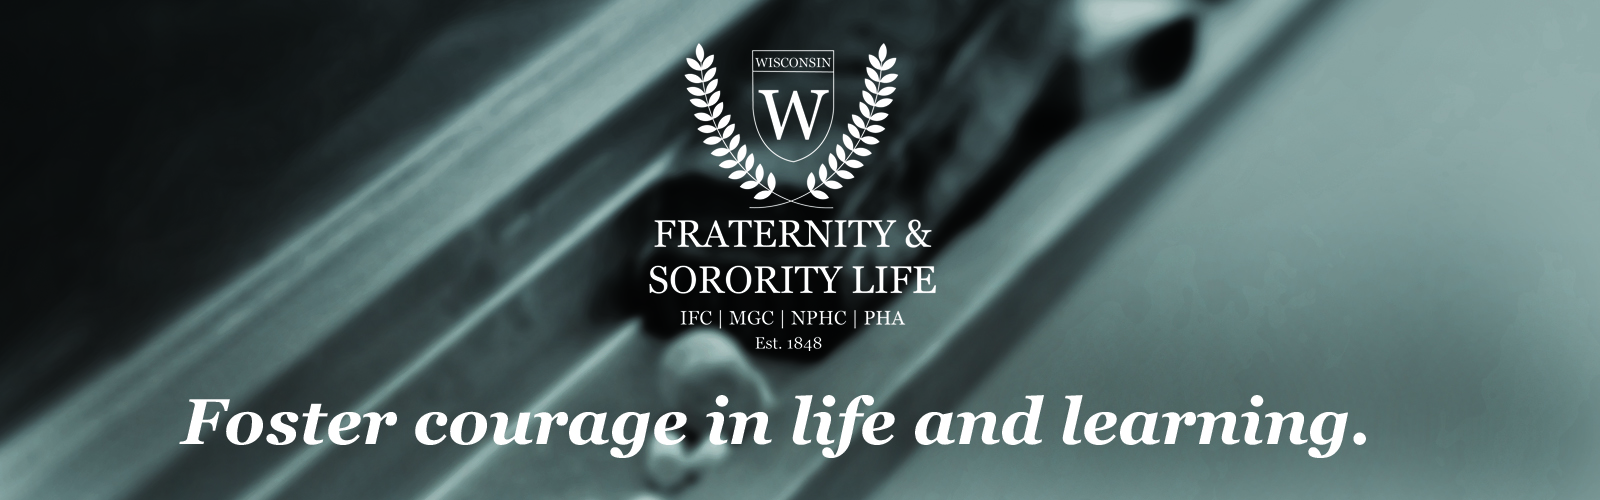 "Black and white photo of eraser and chalk on chalkboard tray with the Fraternity & Sorority Life logo at the top and ""foster courage in life and learning"" at the bottom."